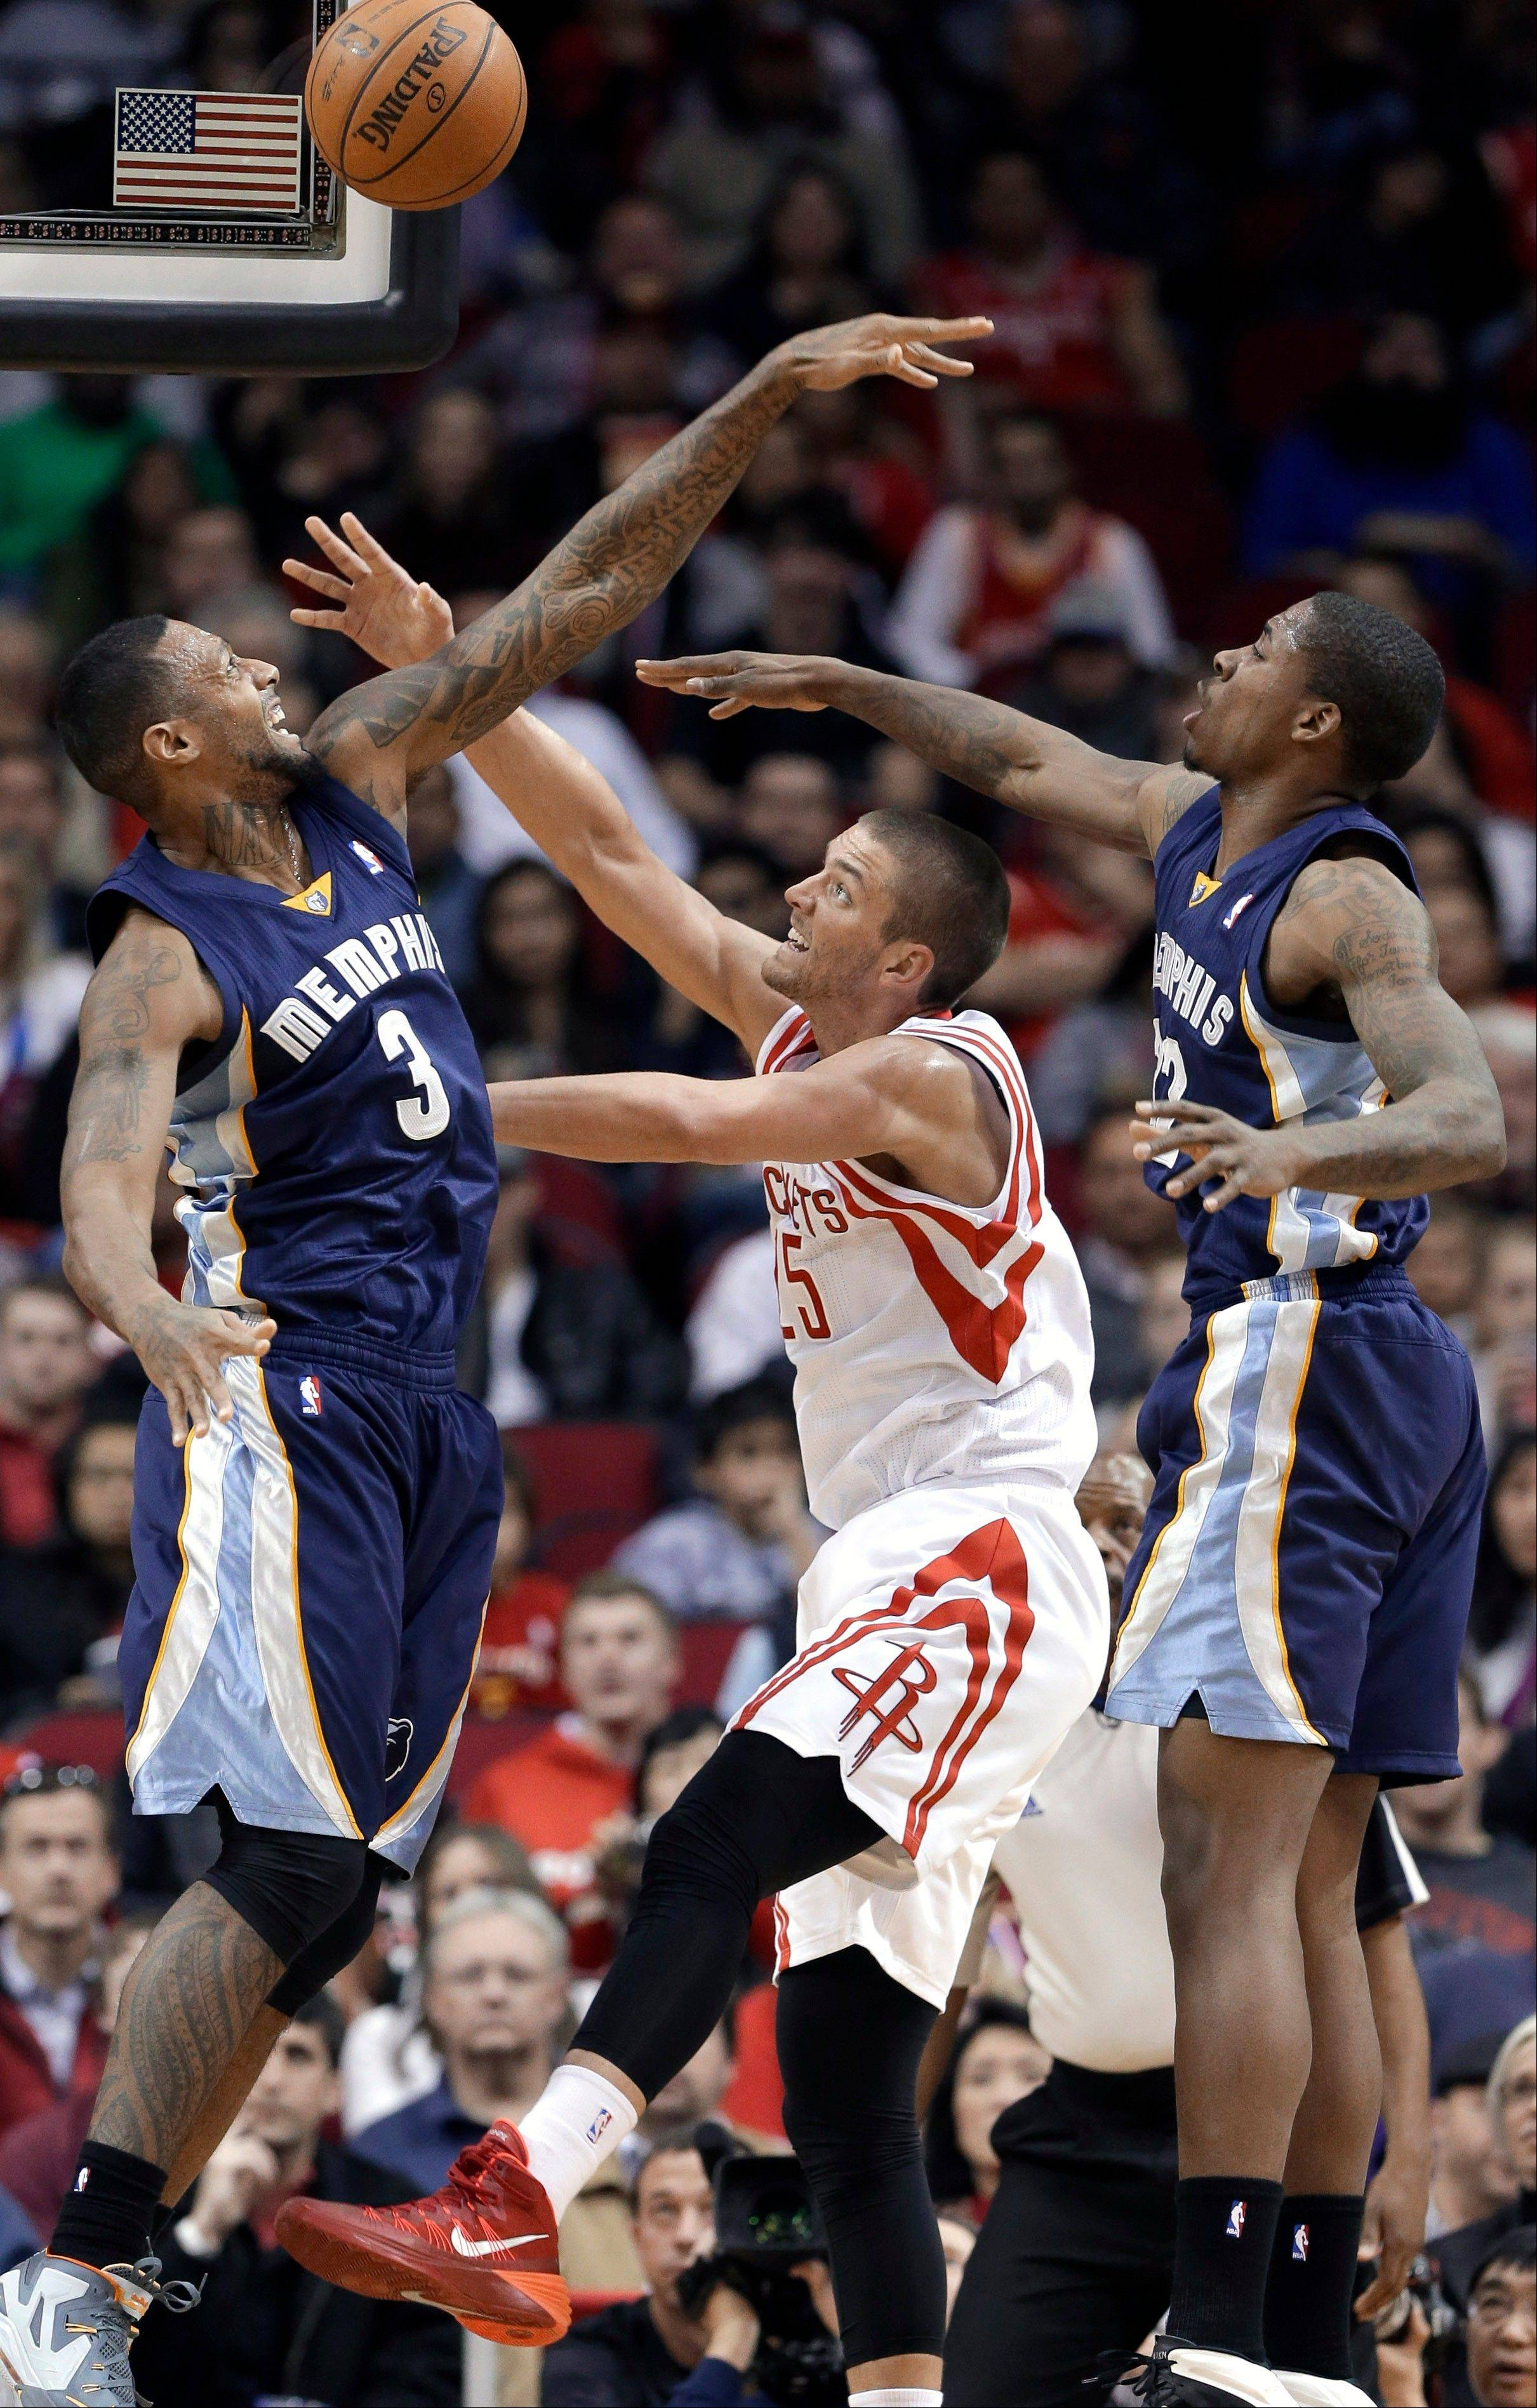 Houston Rockets' Chandler Parsons (25) is double-teamed by Memphis Grizzlies' James Johnson (3) and Ed Davis during the first half of an NBA basketball game Friday, Jan. 24, 2014, in Houston. (AP Photo/Pat Sullivan)